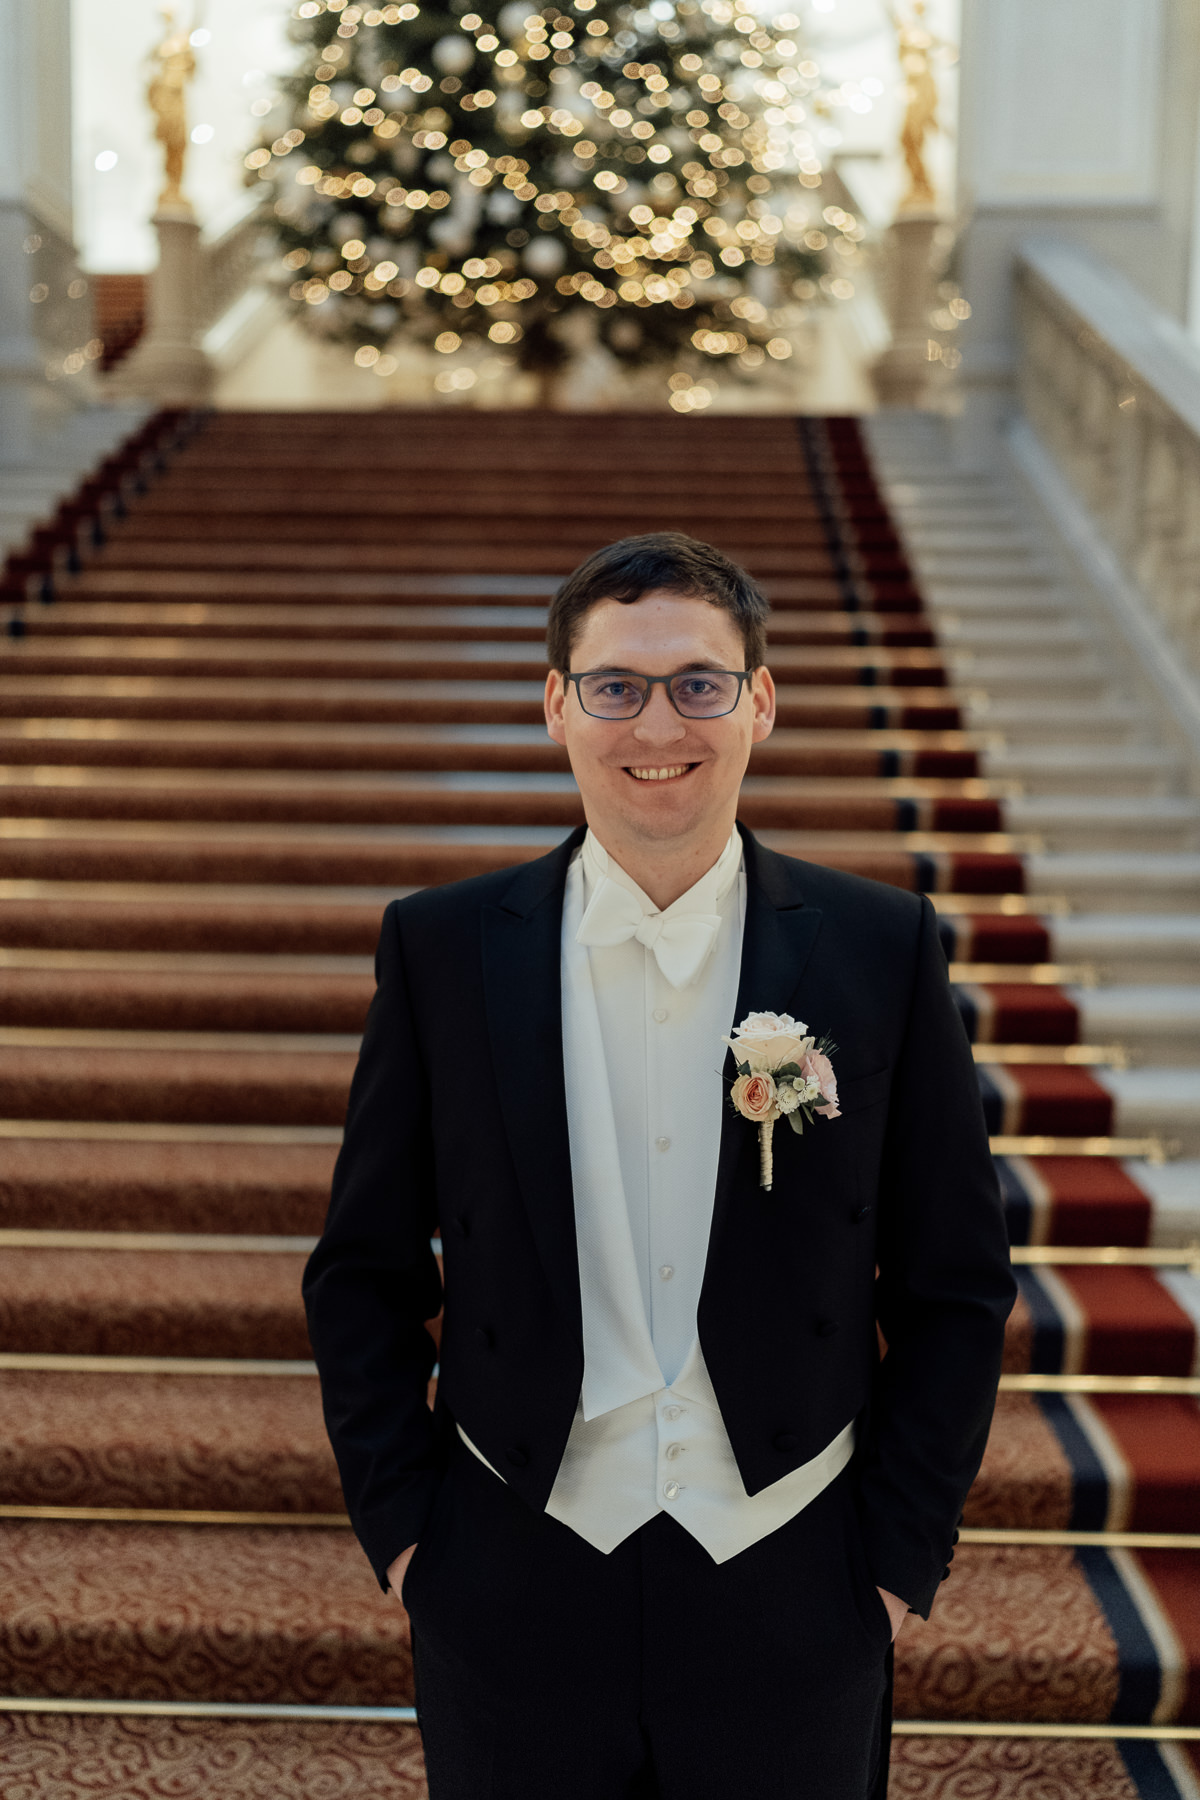 Groom waiting for bride grand staircase Corinthia